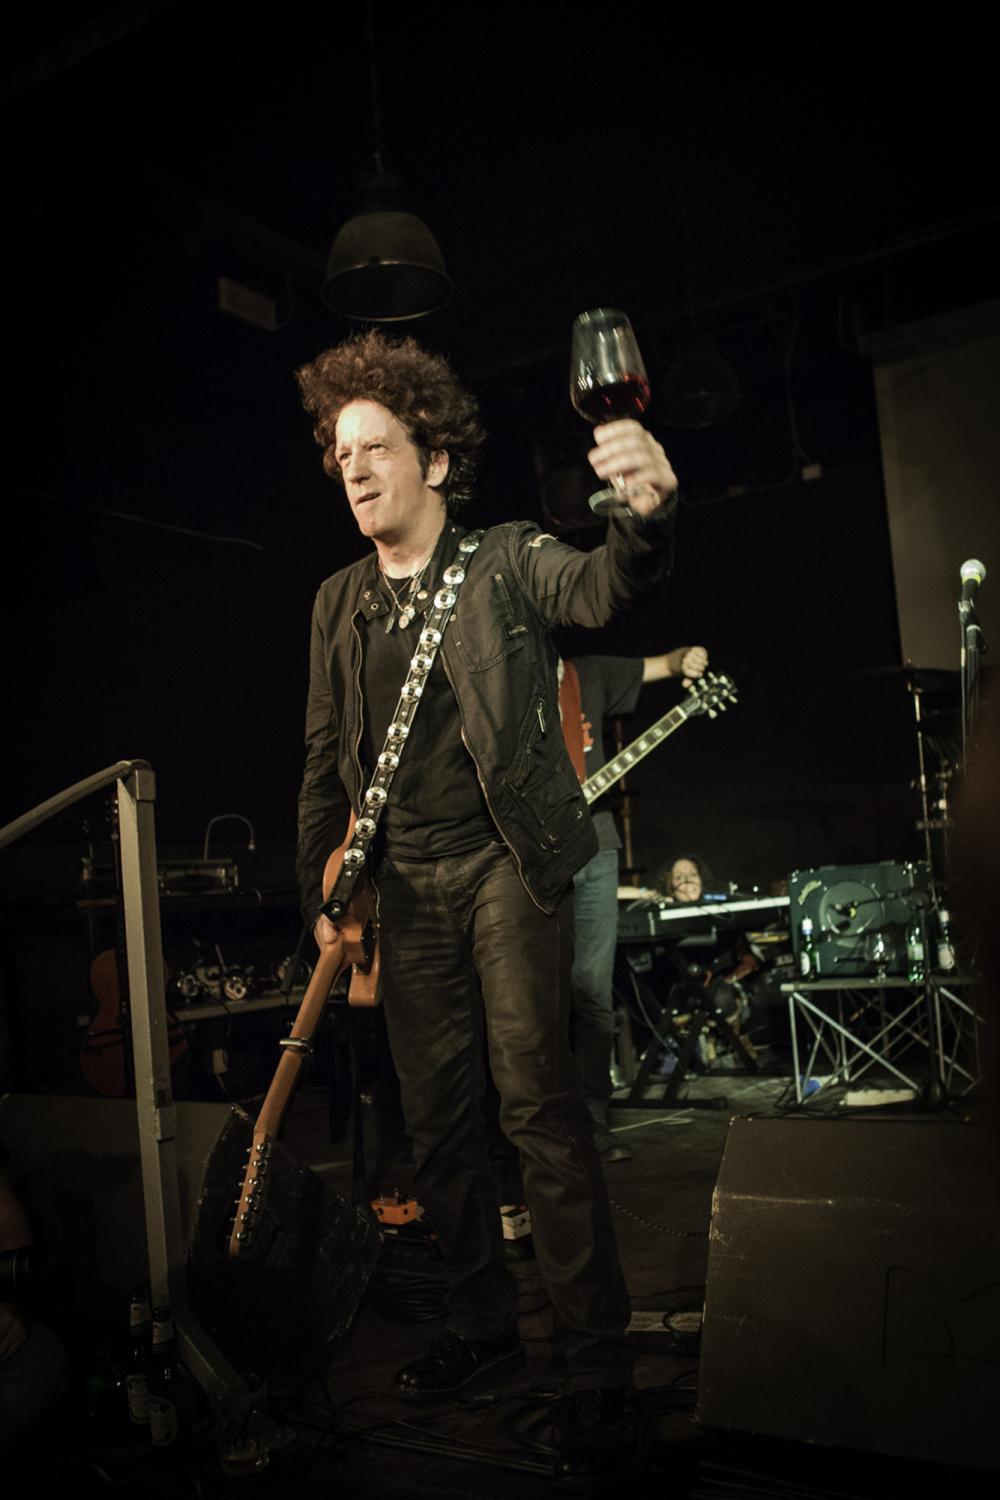 Willie Nile - 11/2014